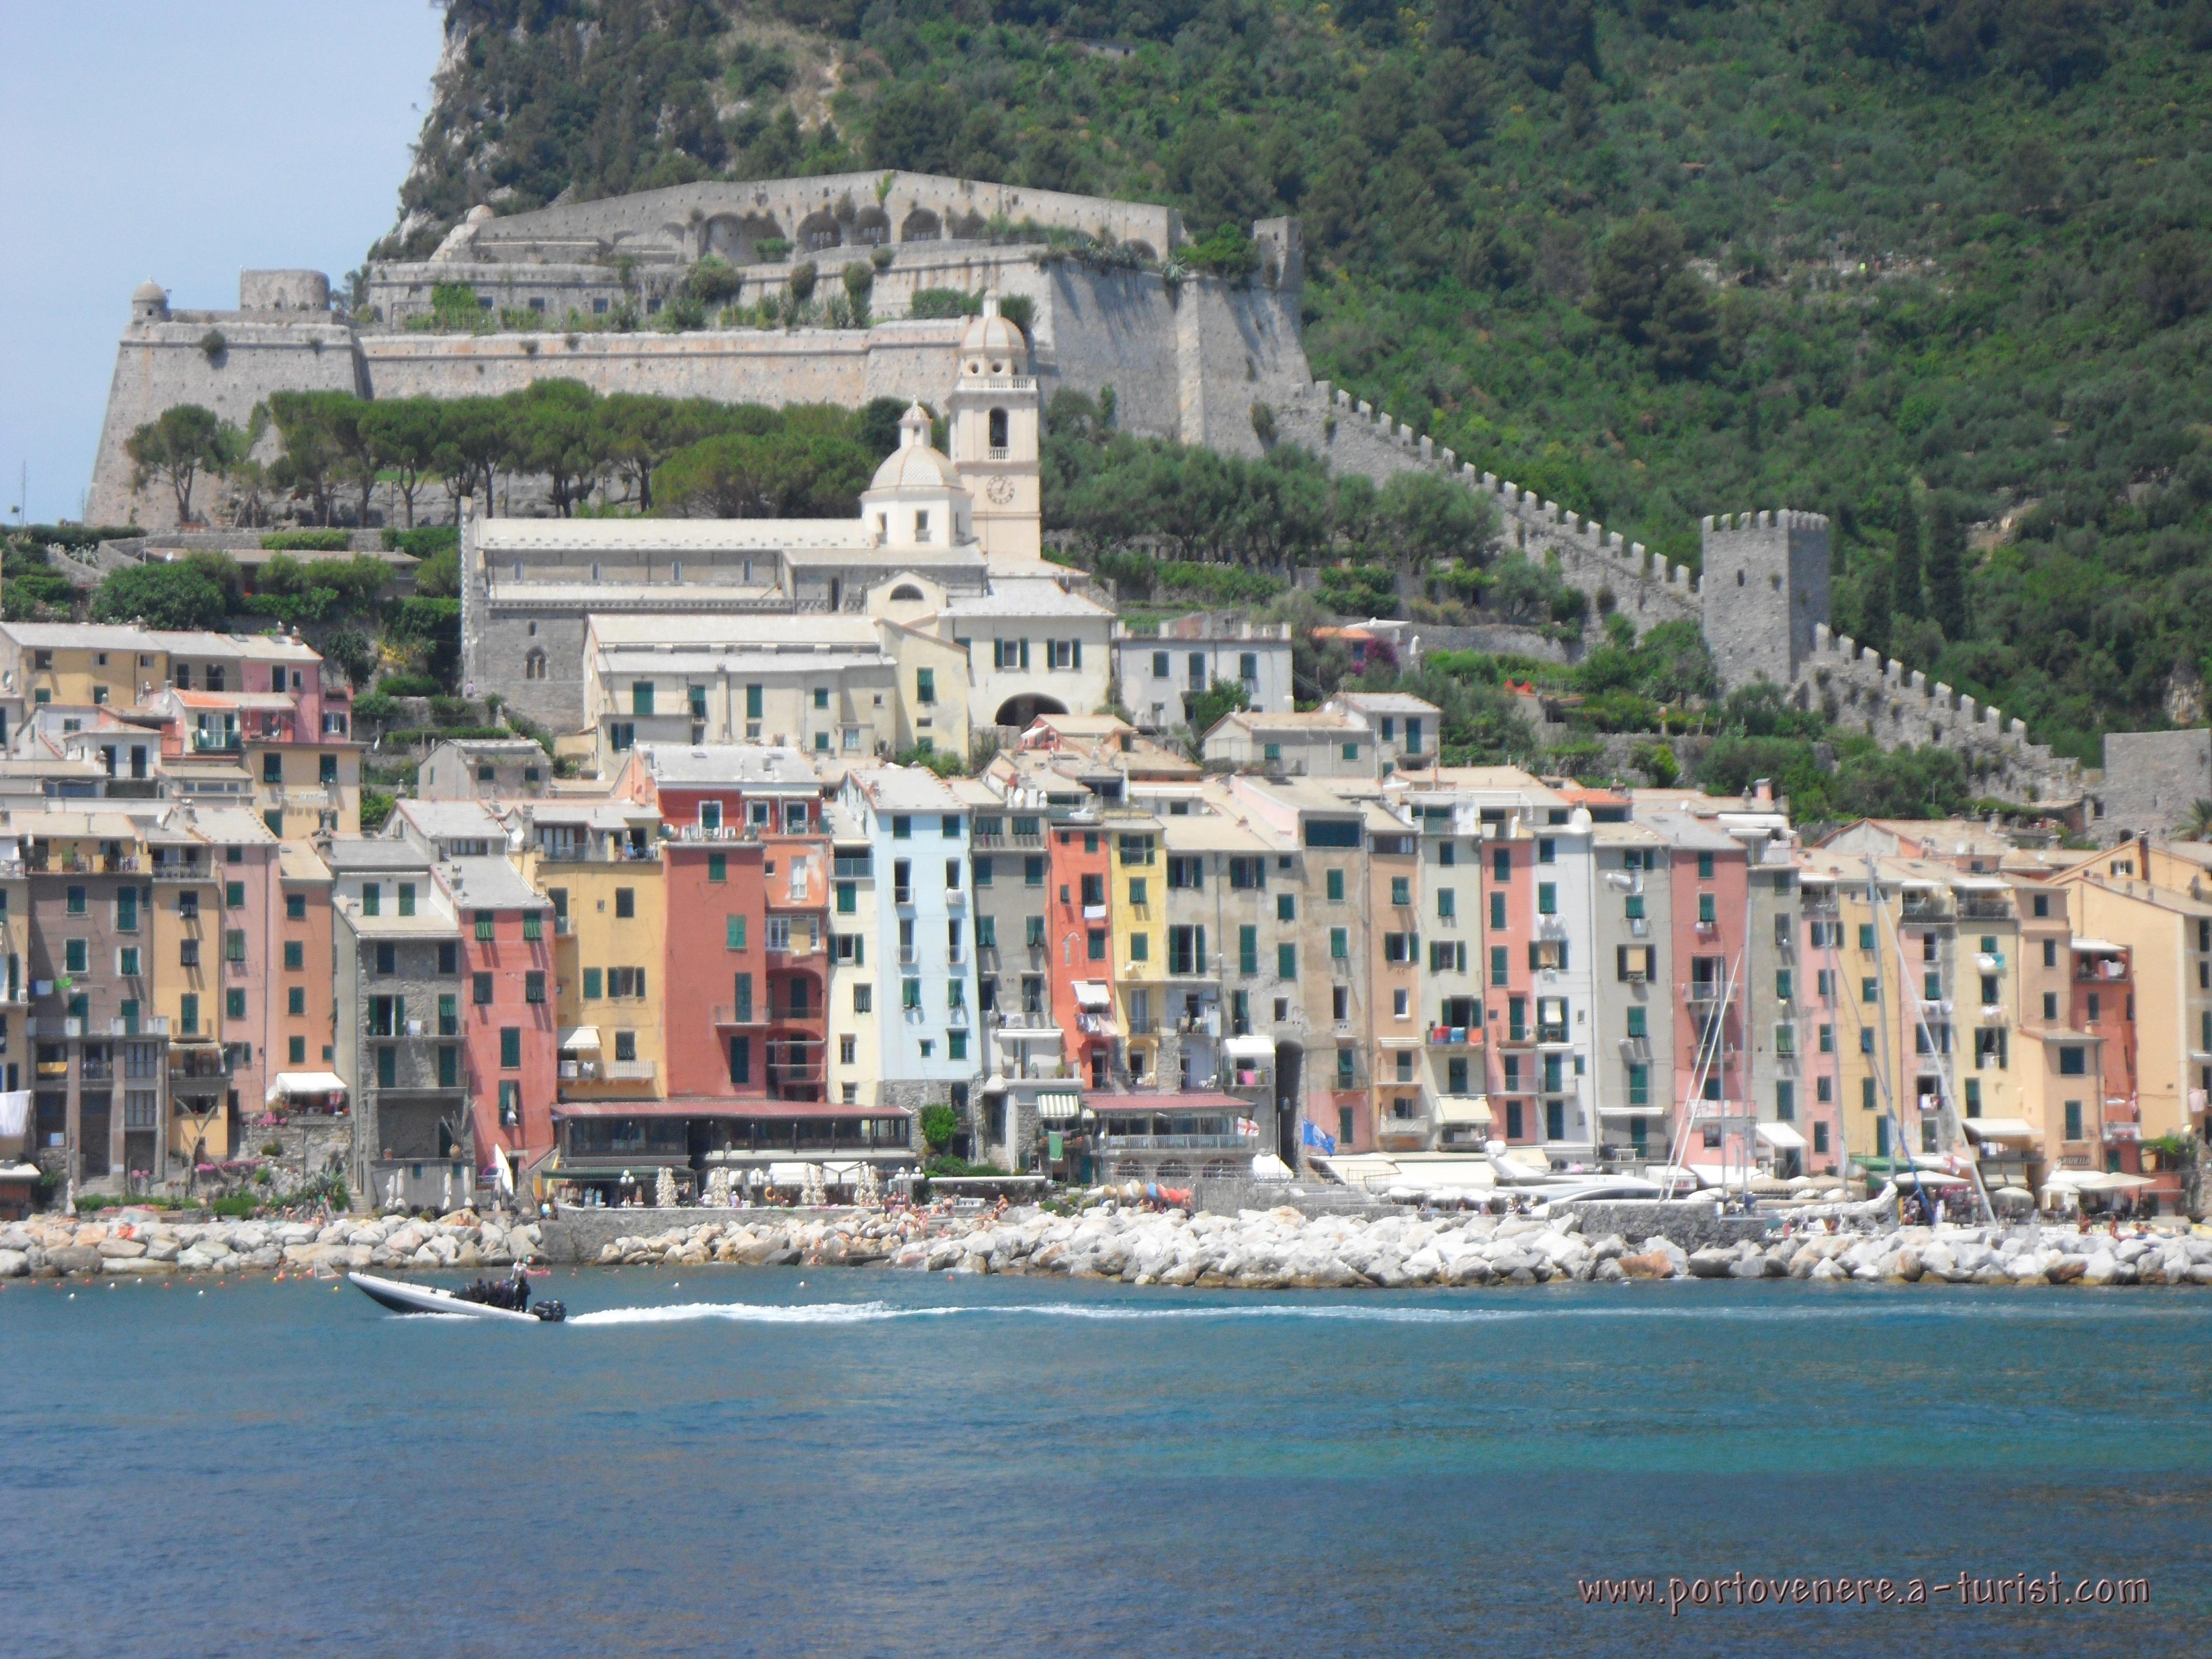 Portovenere - Panoramic view from the island of Palmaria<br>4320x3240, 1.82 MB